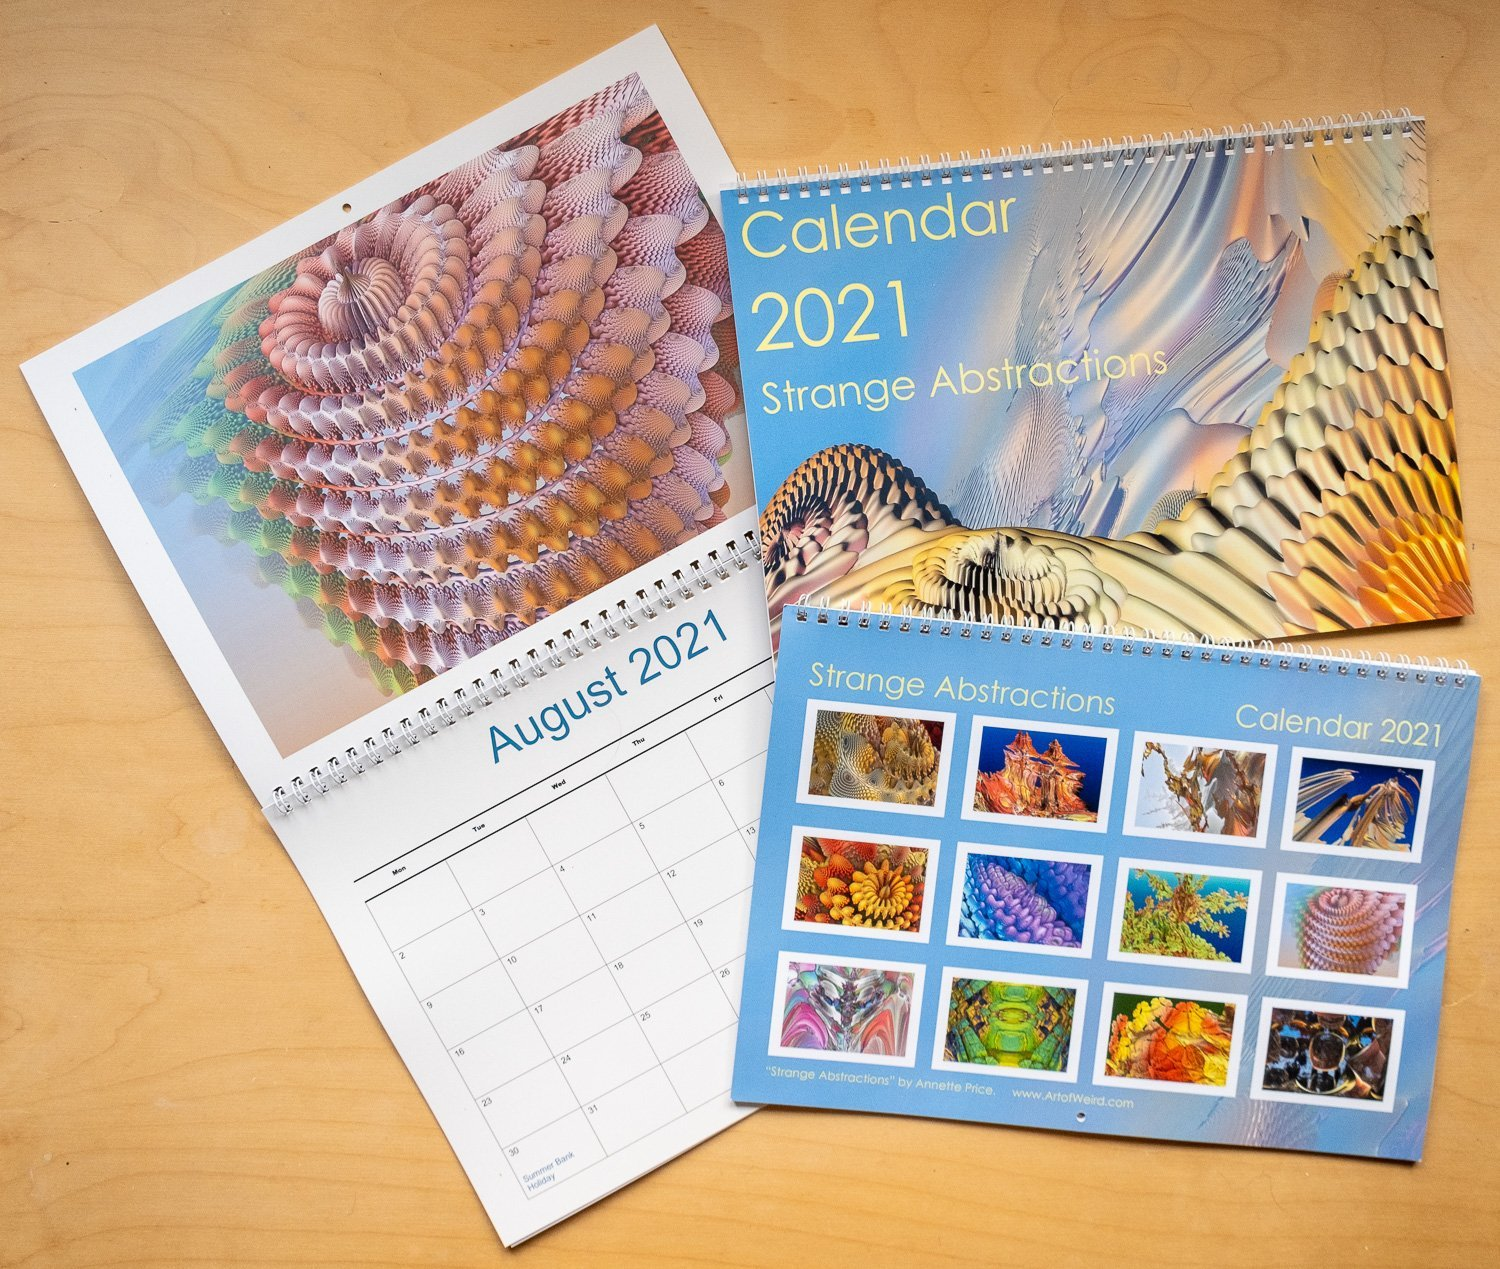 The Strange Abstractions Calendar 2021 has been printed :-)